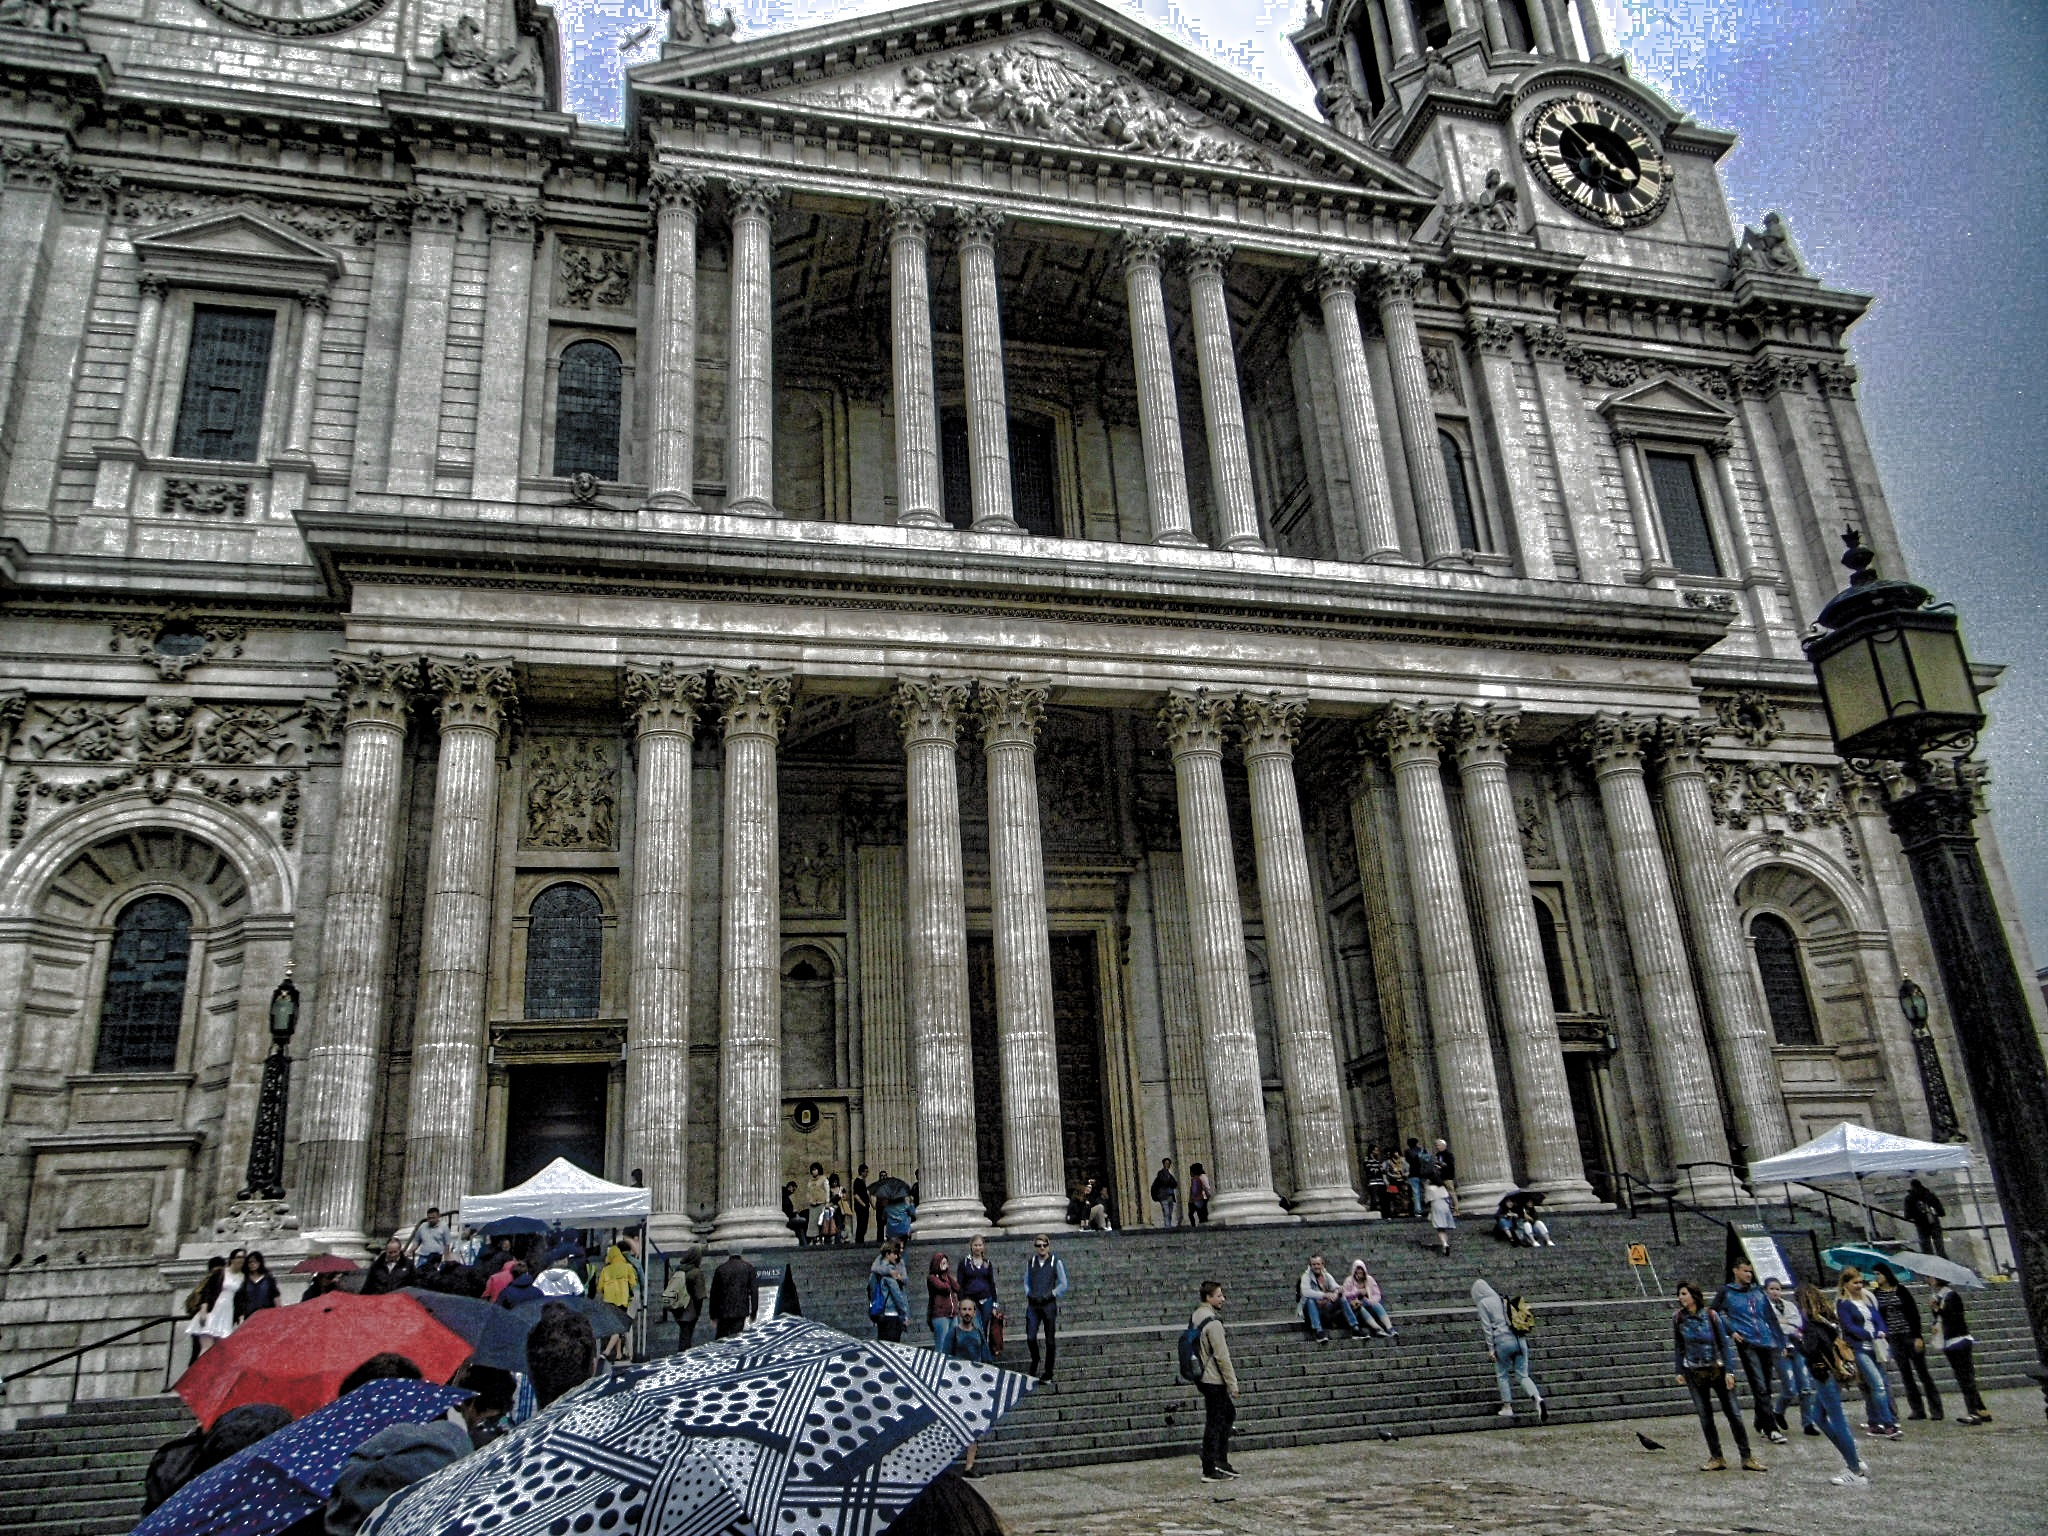 St Pauls by Simon Hill